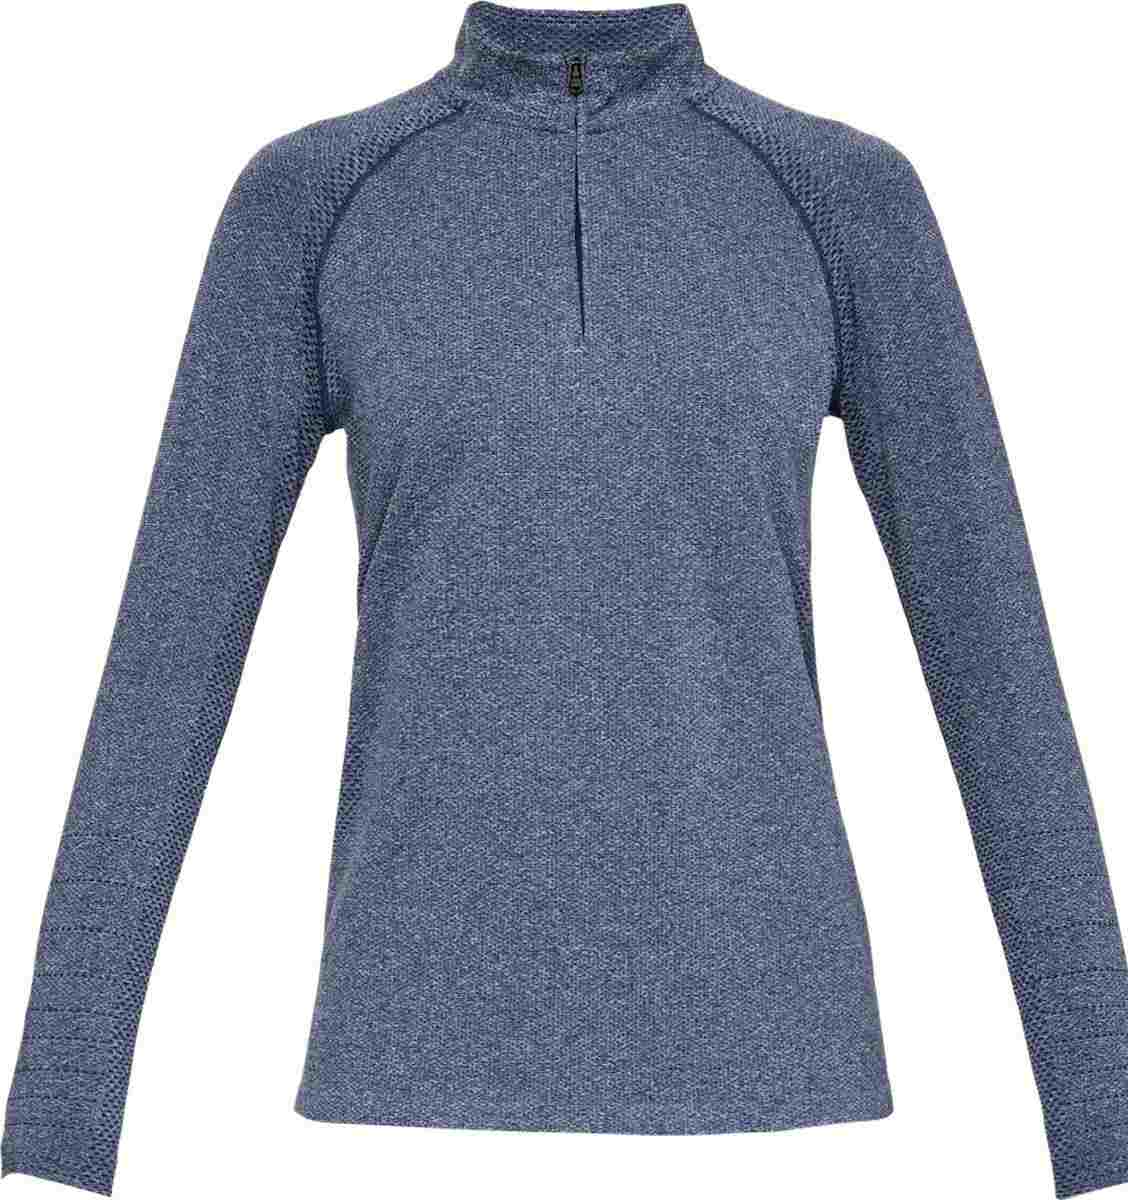 Under Armour Vanish Seamless 1/4 Zip LS dámská mikina